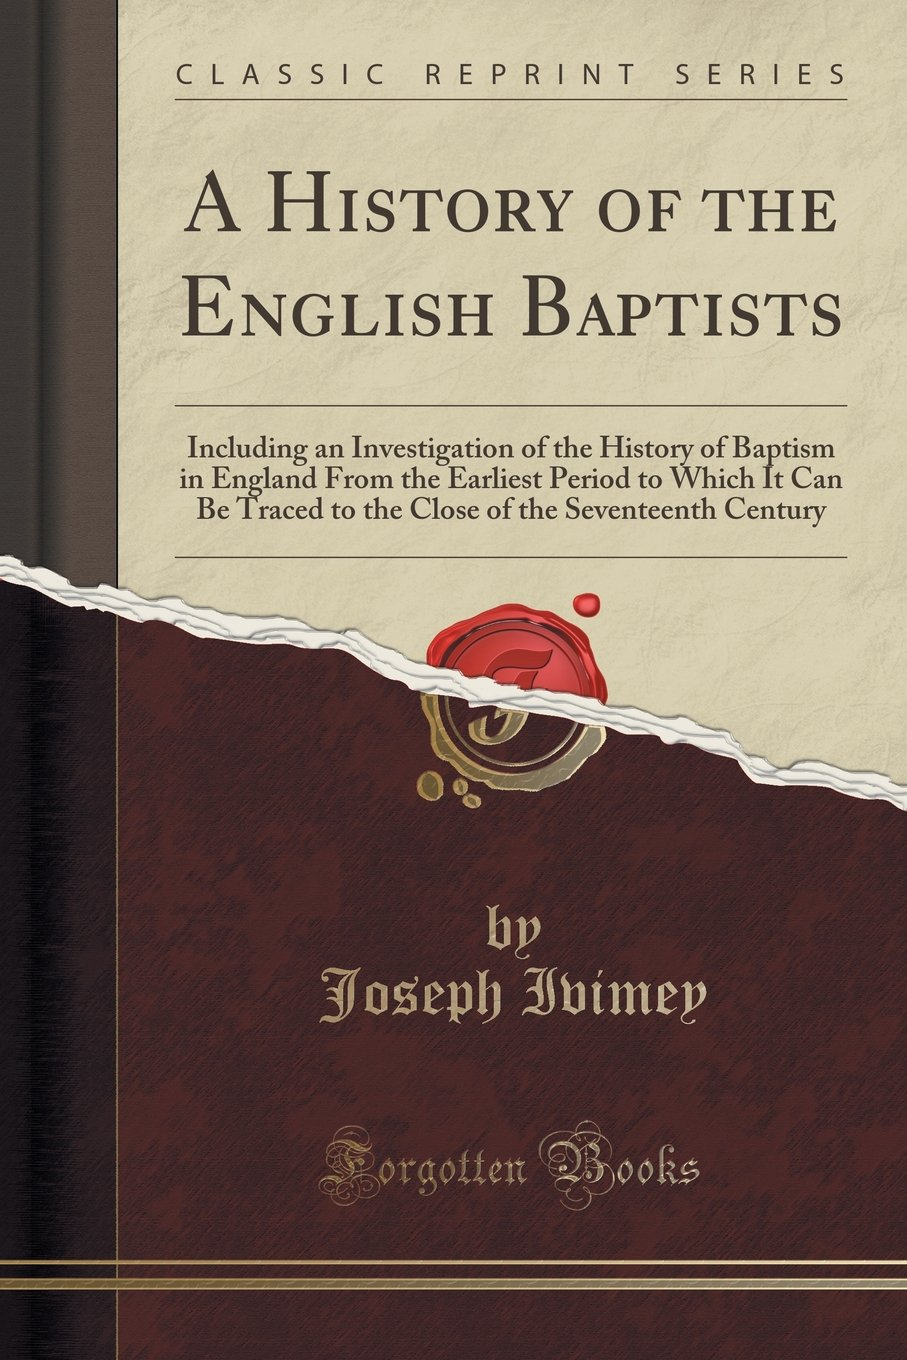 A History of the English Baptists: Including an Investigation of the History of Baptism in England From the Earliest Period to Which It Can Be Traced of the Seventeenth Century (Classic Reprint) ebook